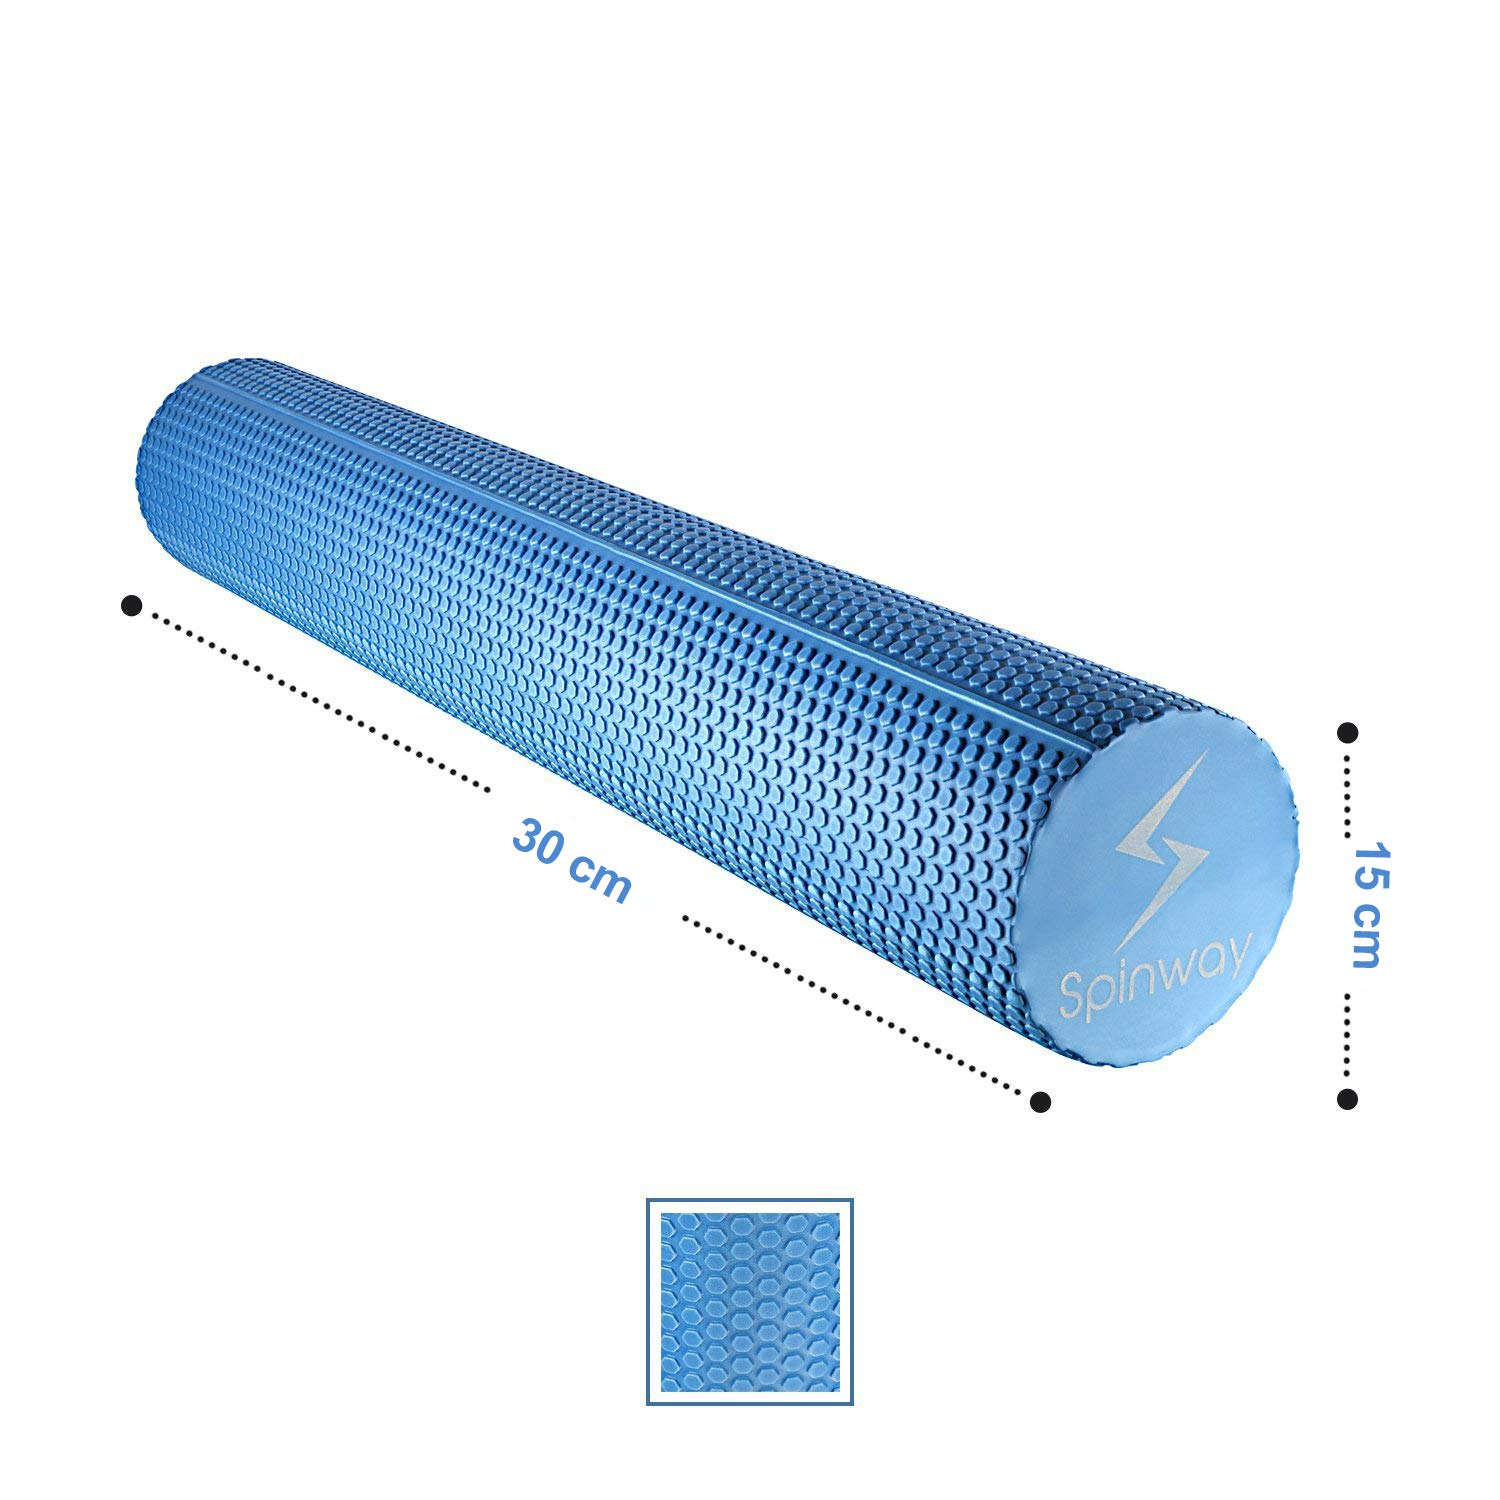 spinway Yoga Foam Roller Speckled Foam Rollers for Muscles Extra Firm High Density for Physical Therapy Exercise Deep Tissue Muscle Massage (Blue) by spinway (Image #5)